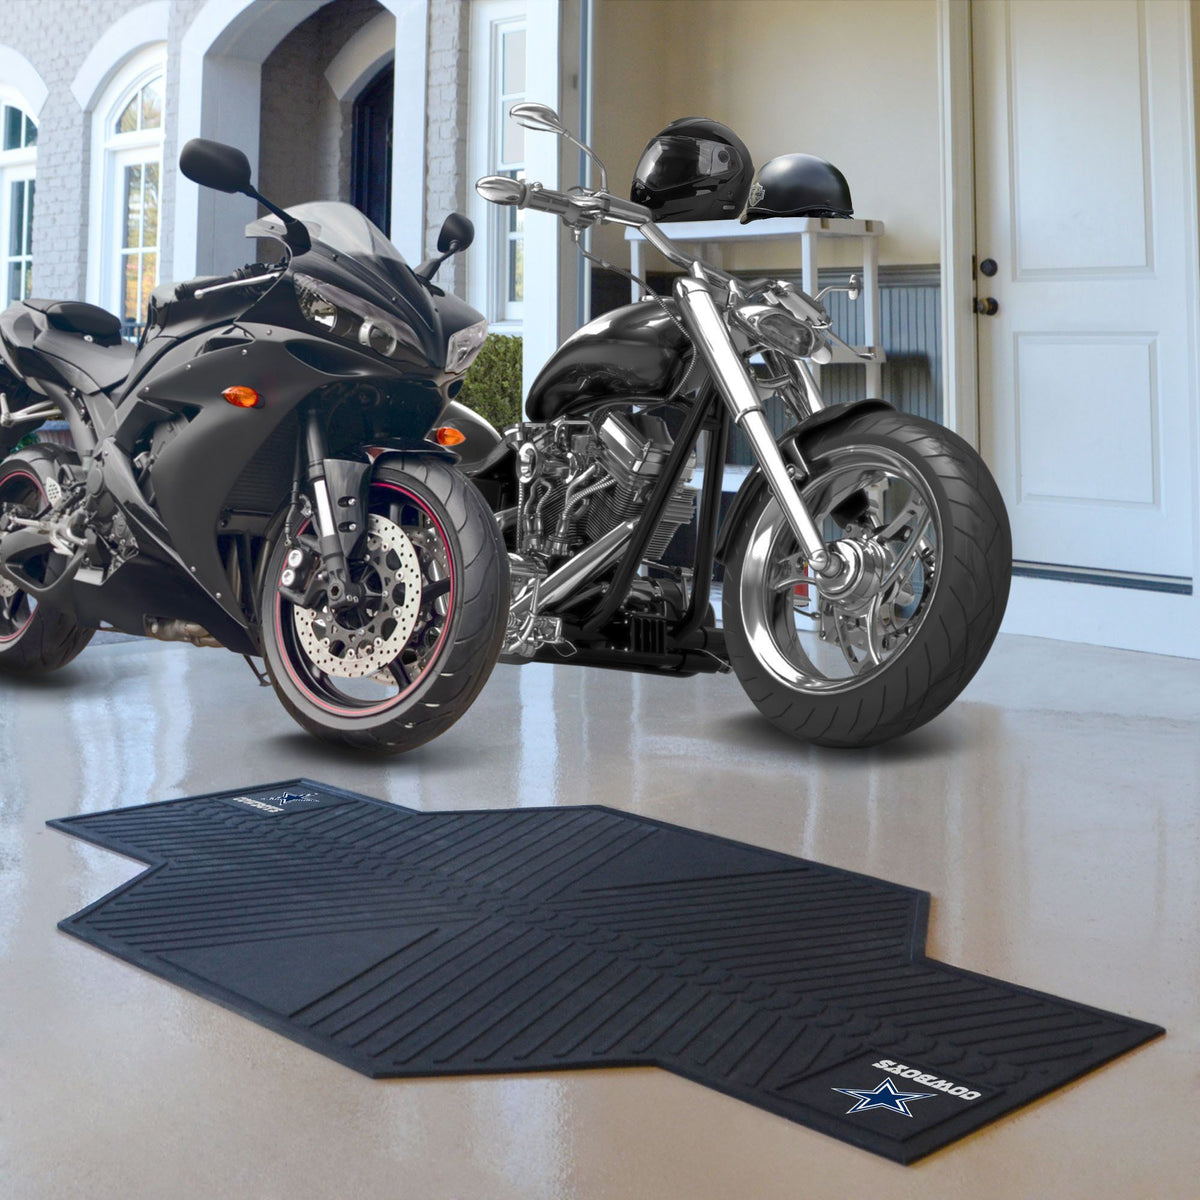 "NFL - Motorcycle Mat, 82.5"" x 42"" NFL Mats, Motorcycle Accessory, Motorcycle Mat, NFL, Auto Fan Mats Dallas Cowboys"